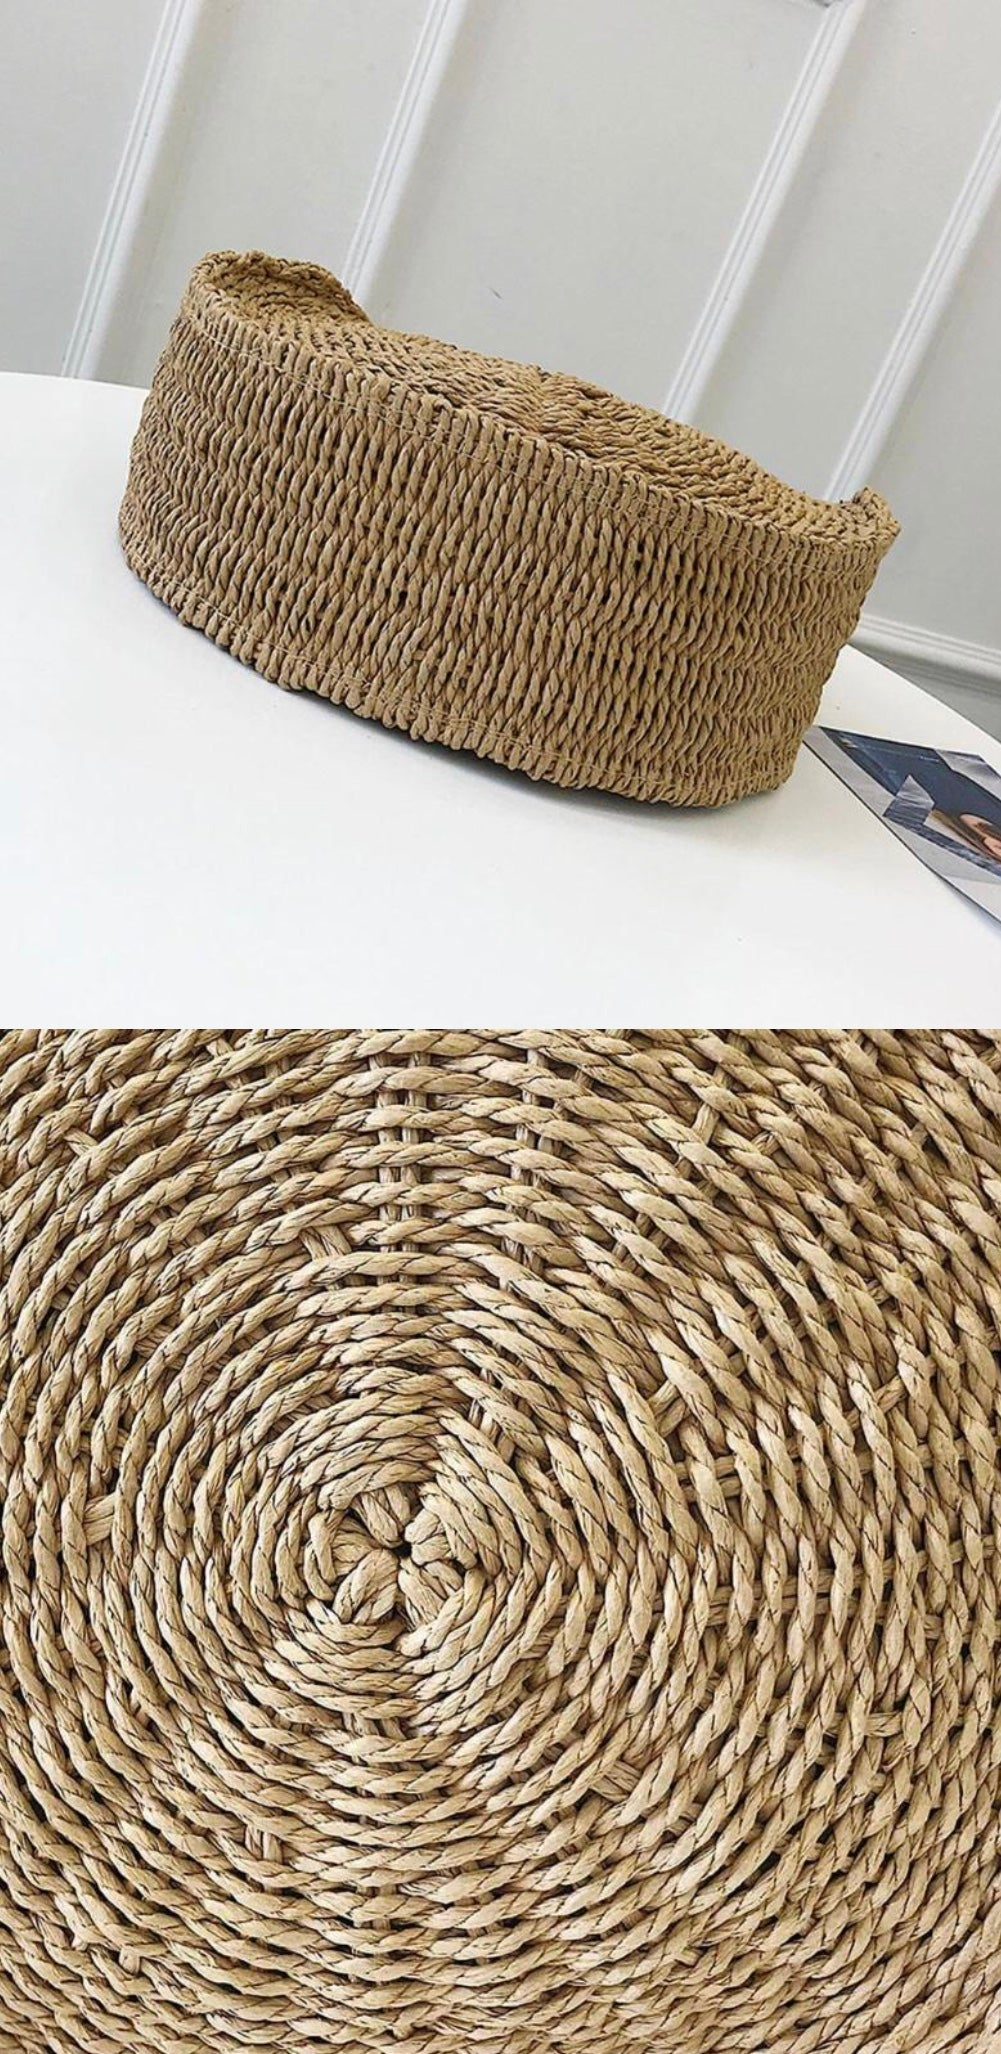 St Tropez Straw Bag